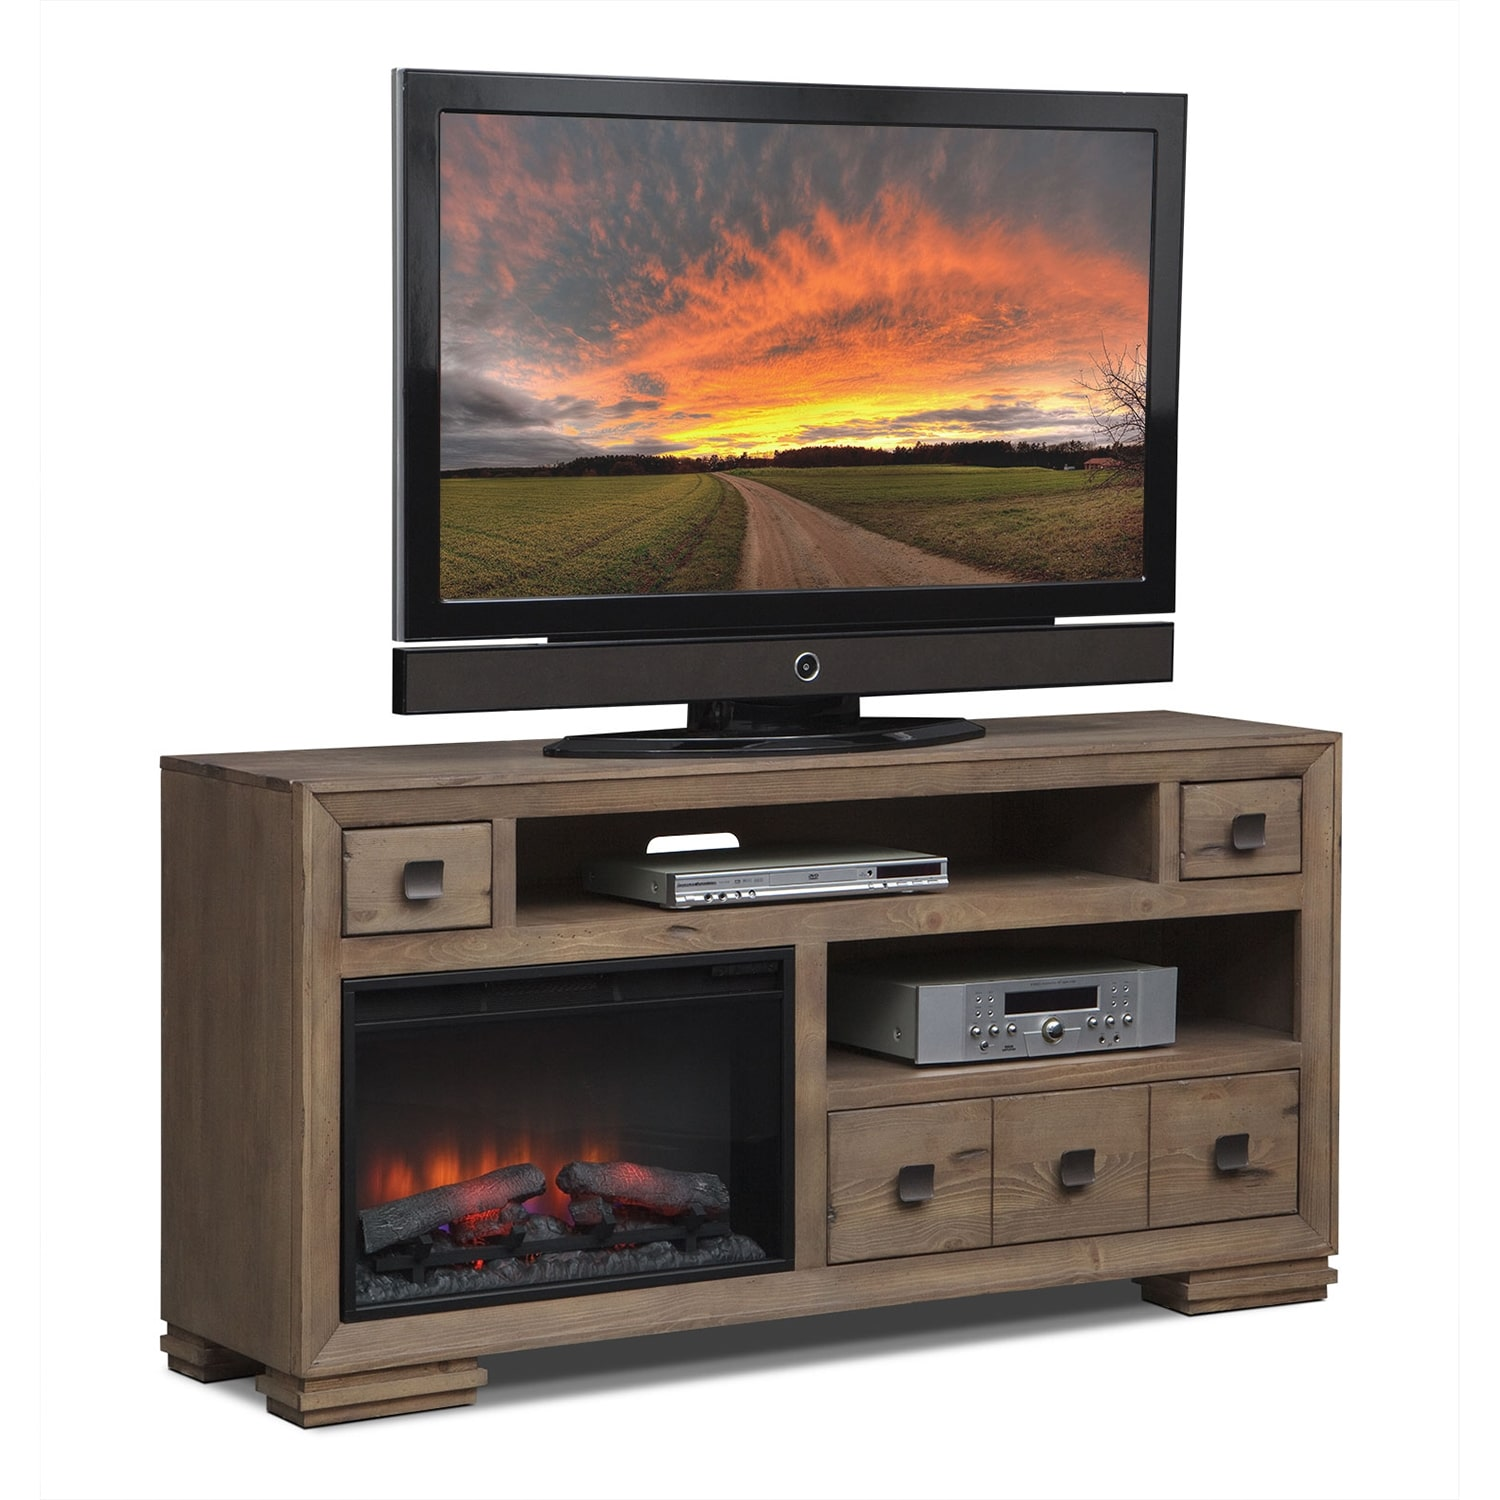 "Mesa 64"" Fireplace TV Stand with Traditional Insert - Distressed Pine"